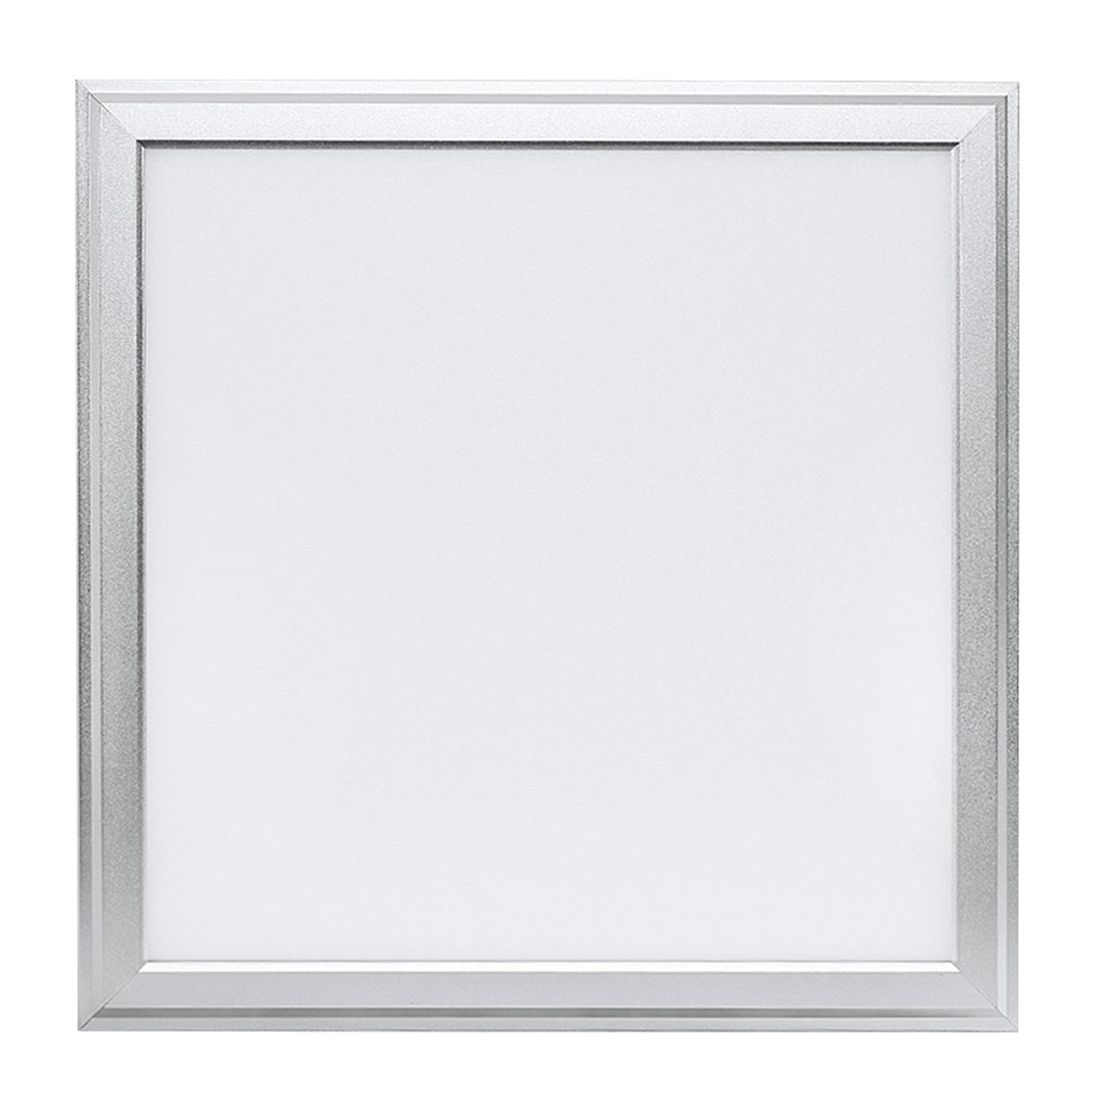 LED 600X600 54W Equal to 160W Fluorescent Bulb Warm White(3000K) Ultraslim Square Ceiling Panel Lamp Light with Aluminum Frame<br>